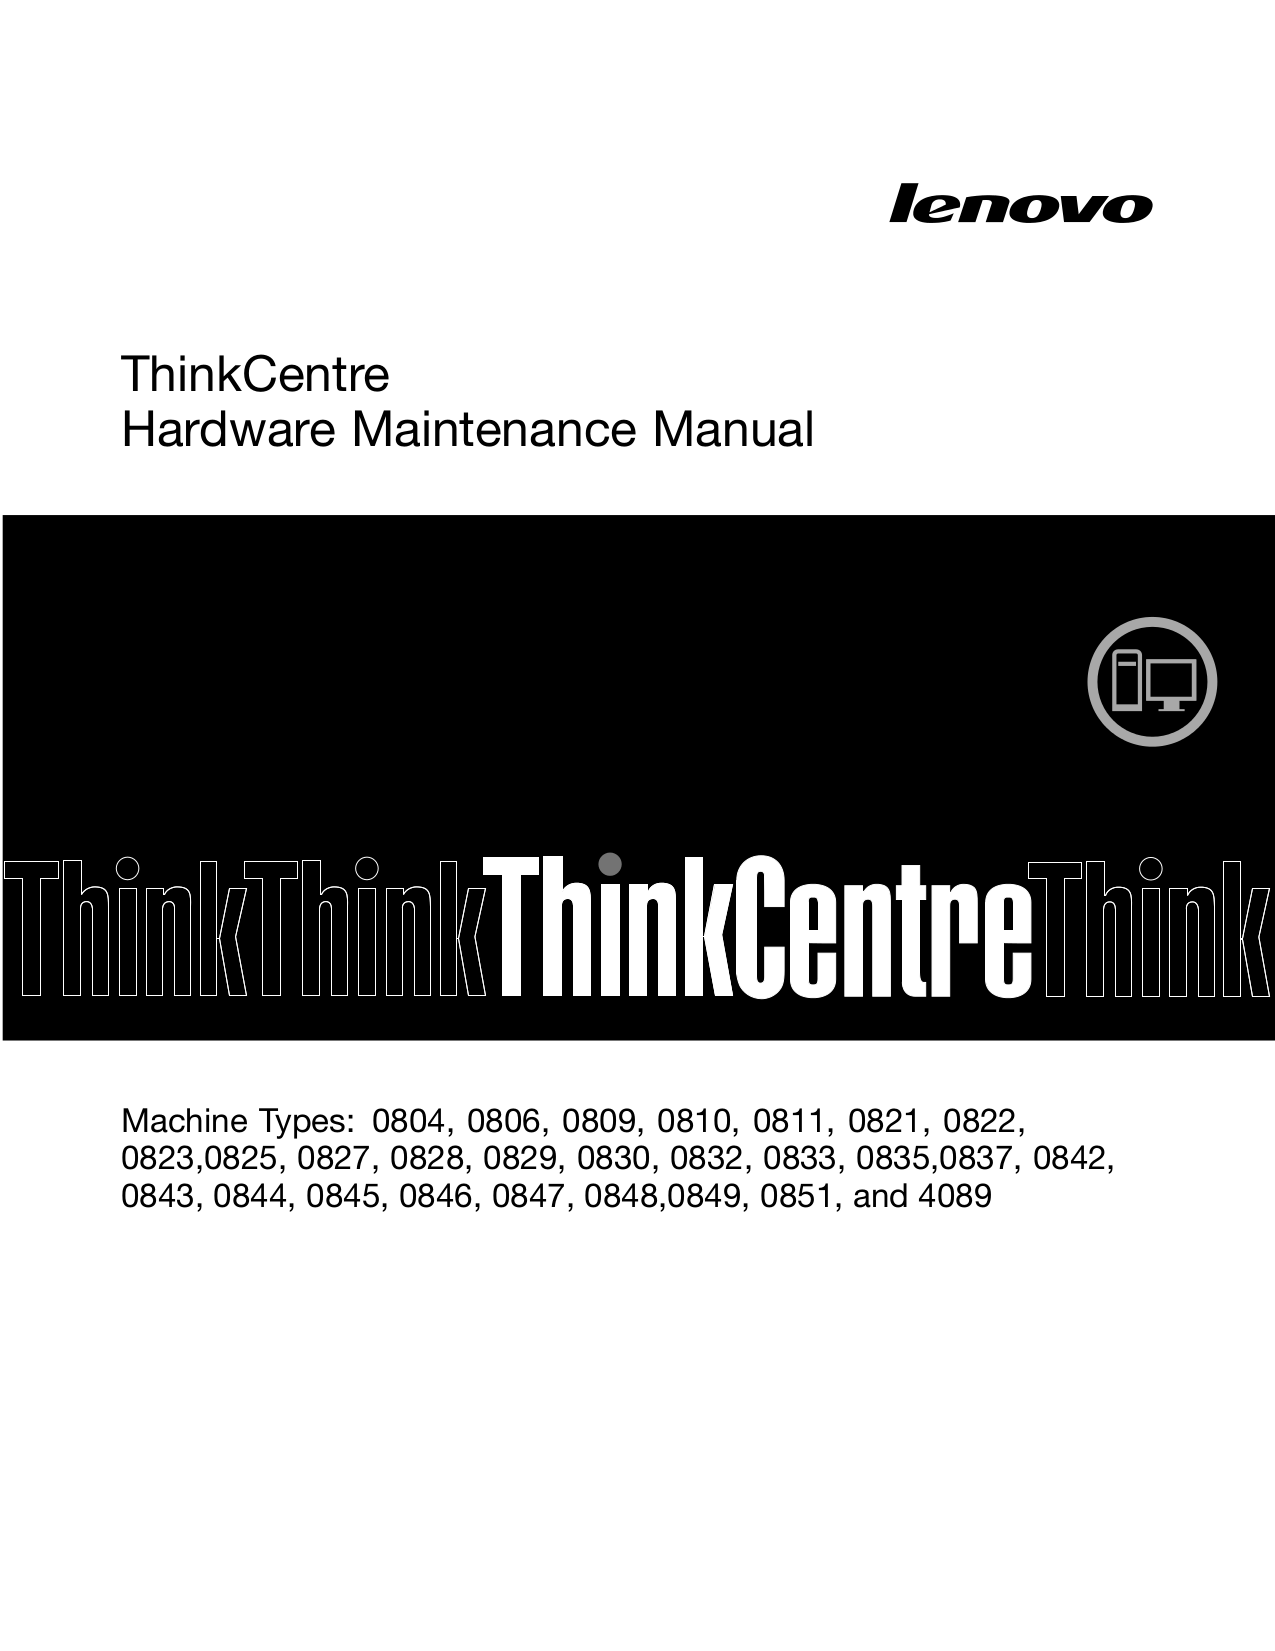 pdf for Lenovo Desktop ThinkCentre M70e 0830 manual